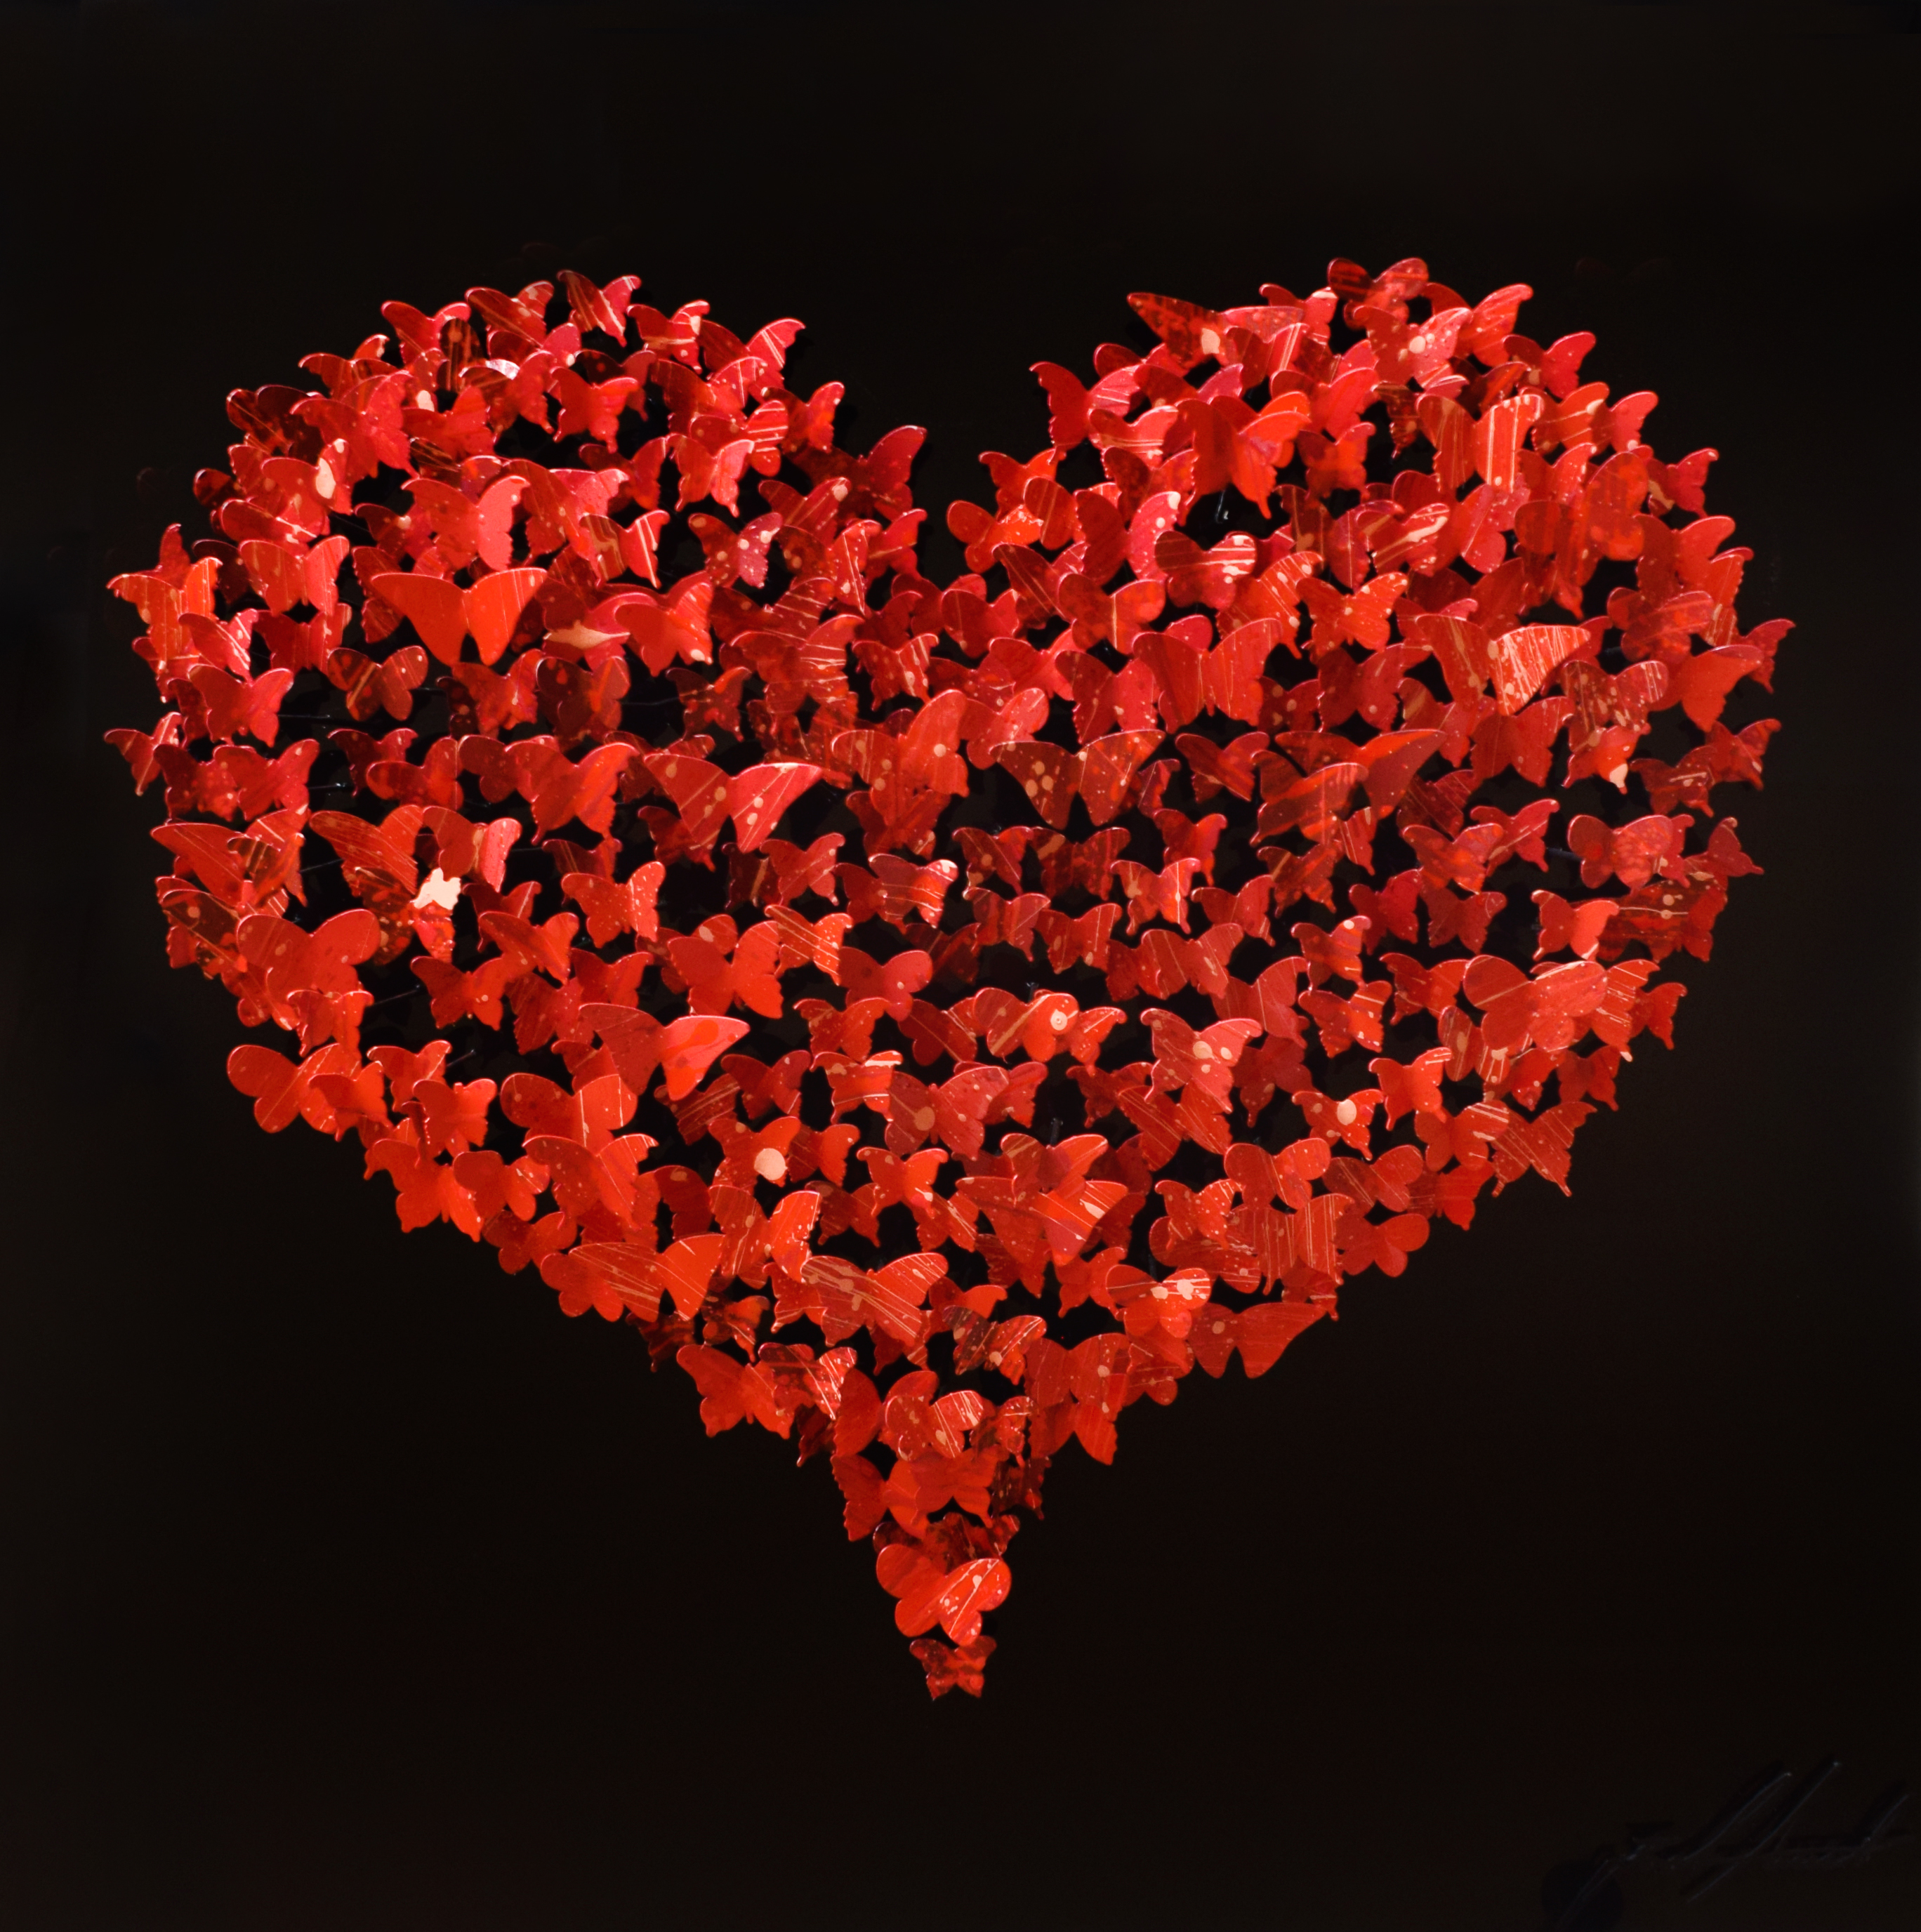 Joel Amit - Flying Love (The Red Heart) , 6665-012-125